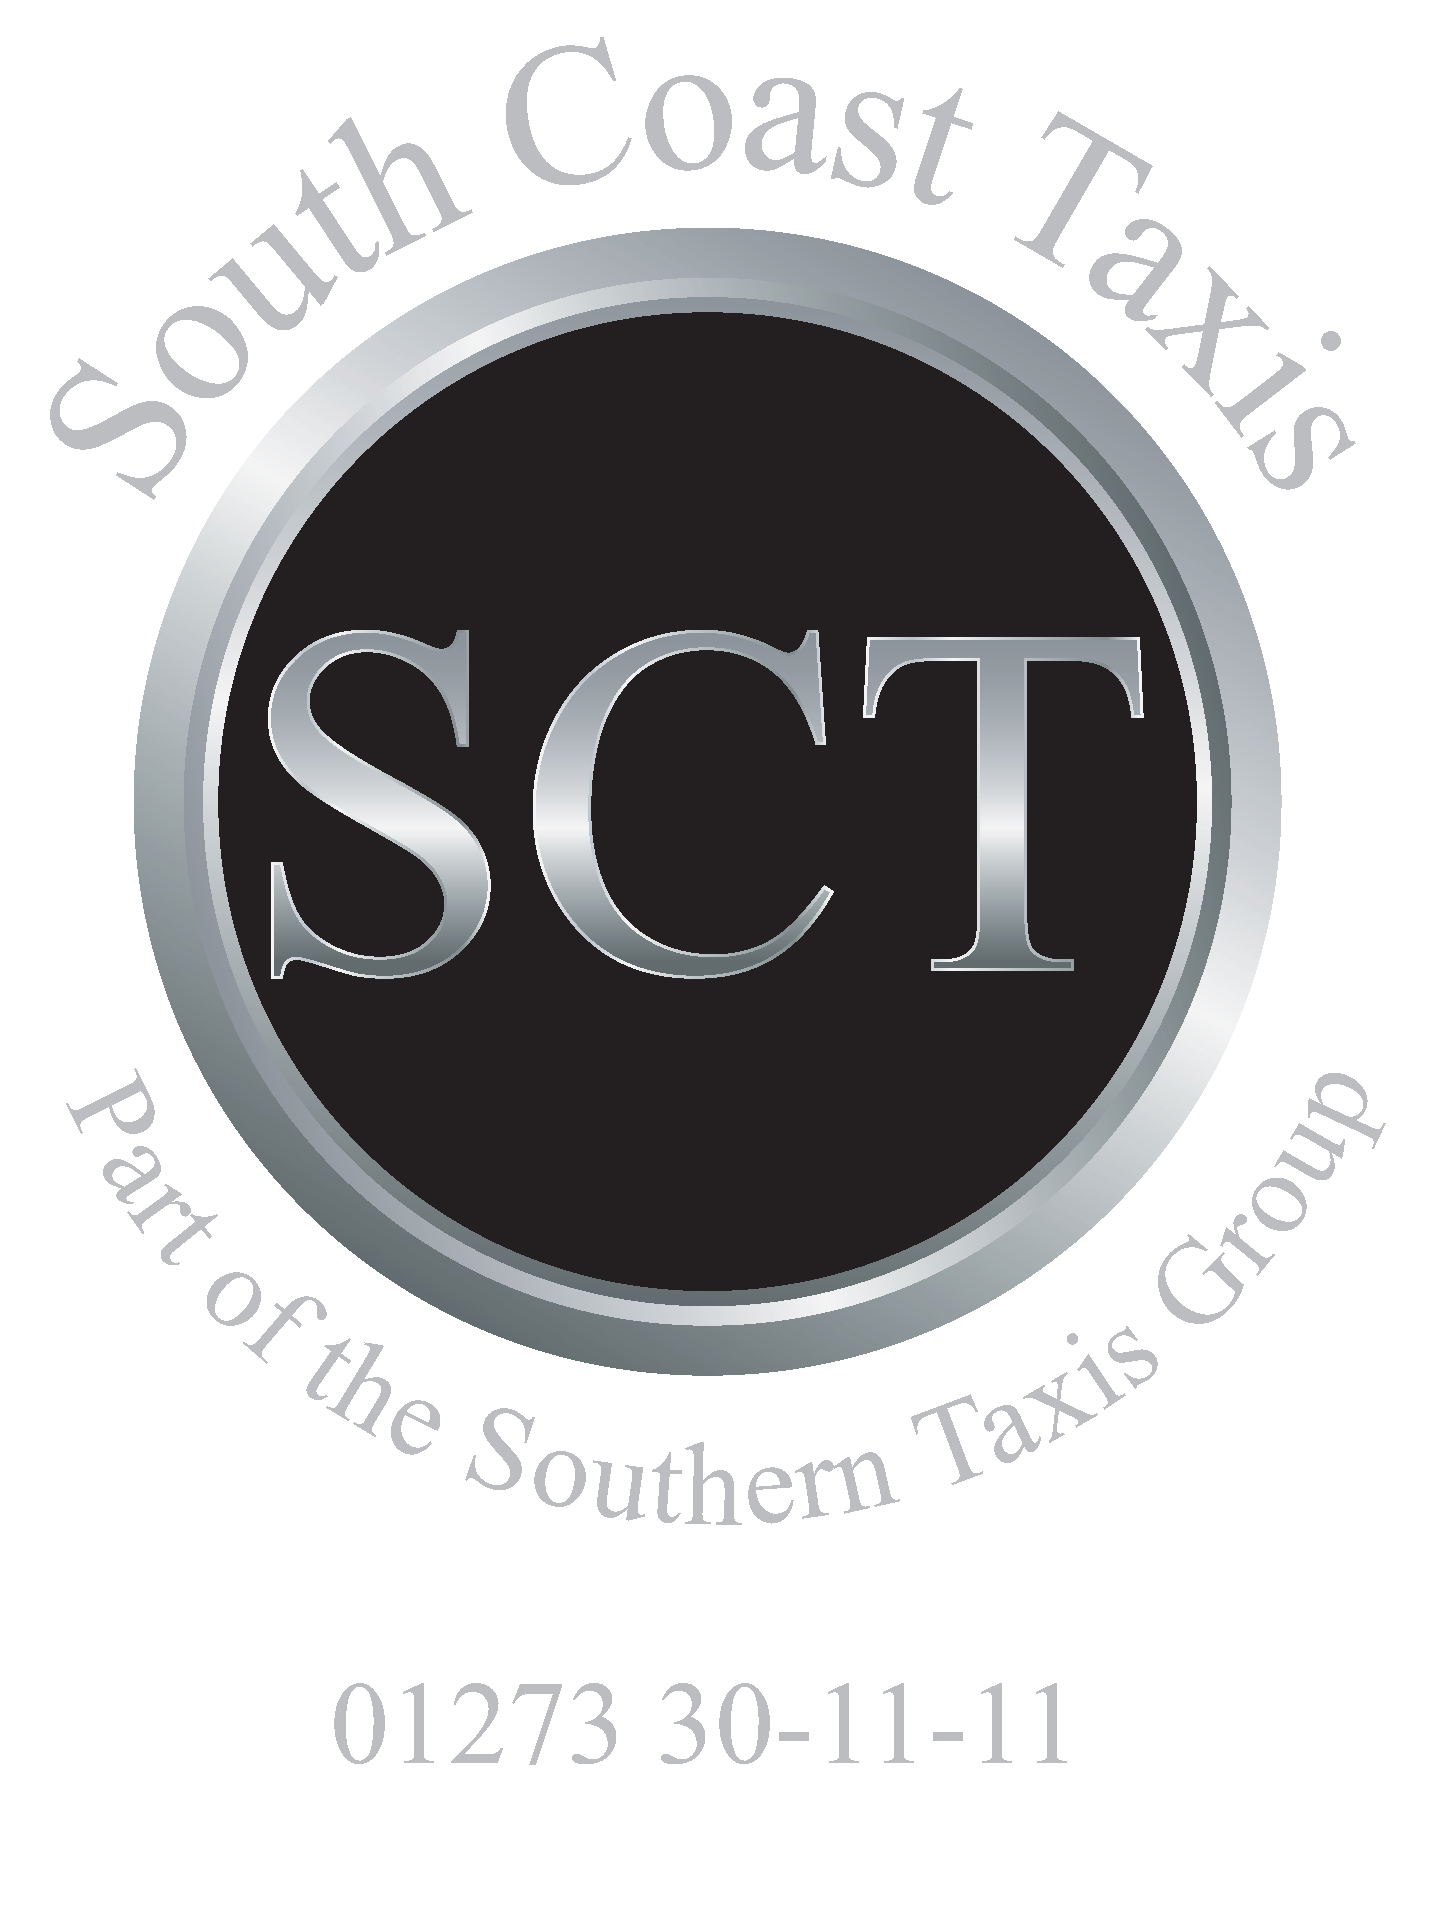 South Coast Taxis